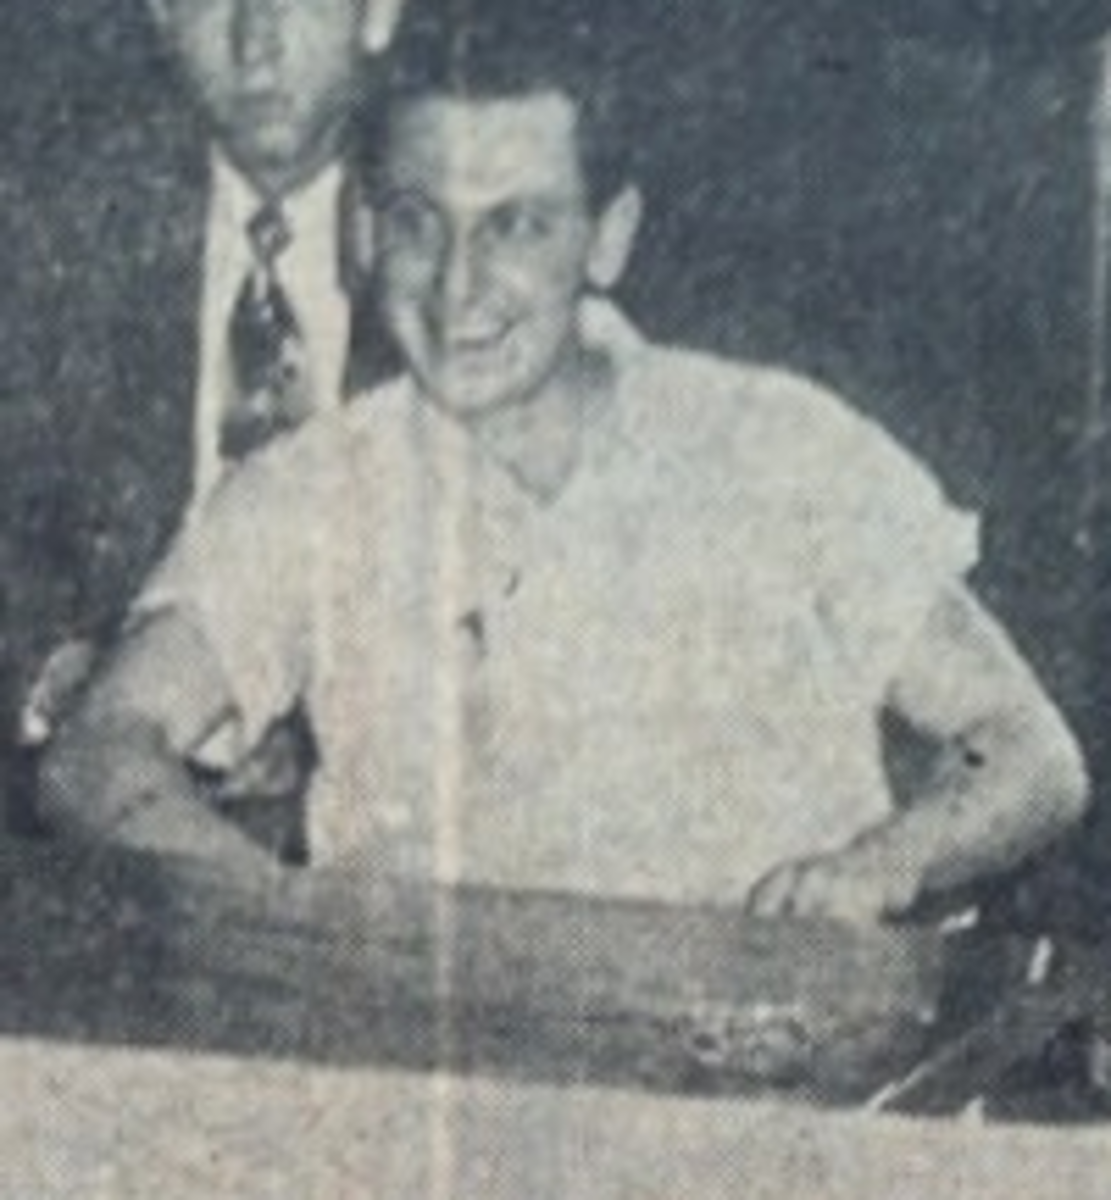 Billy Gibbs during his trial (1955)